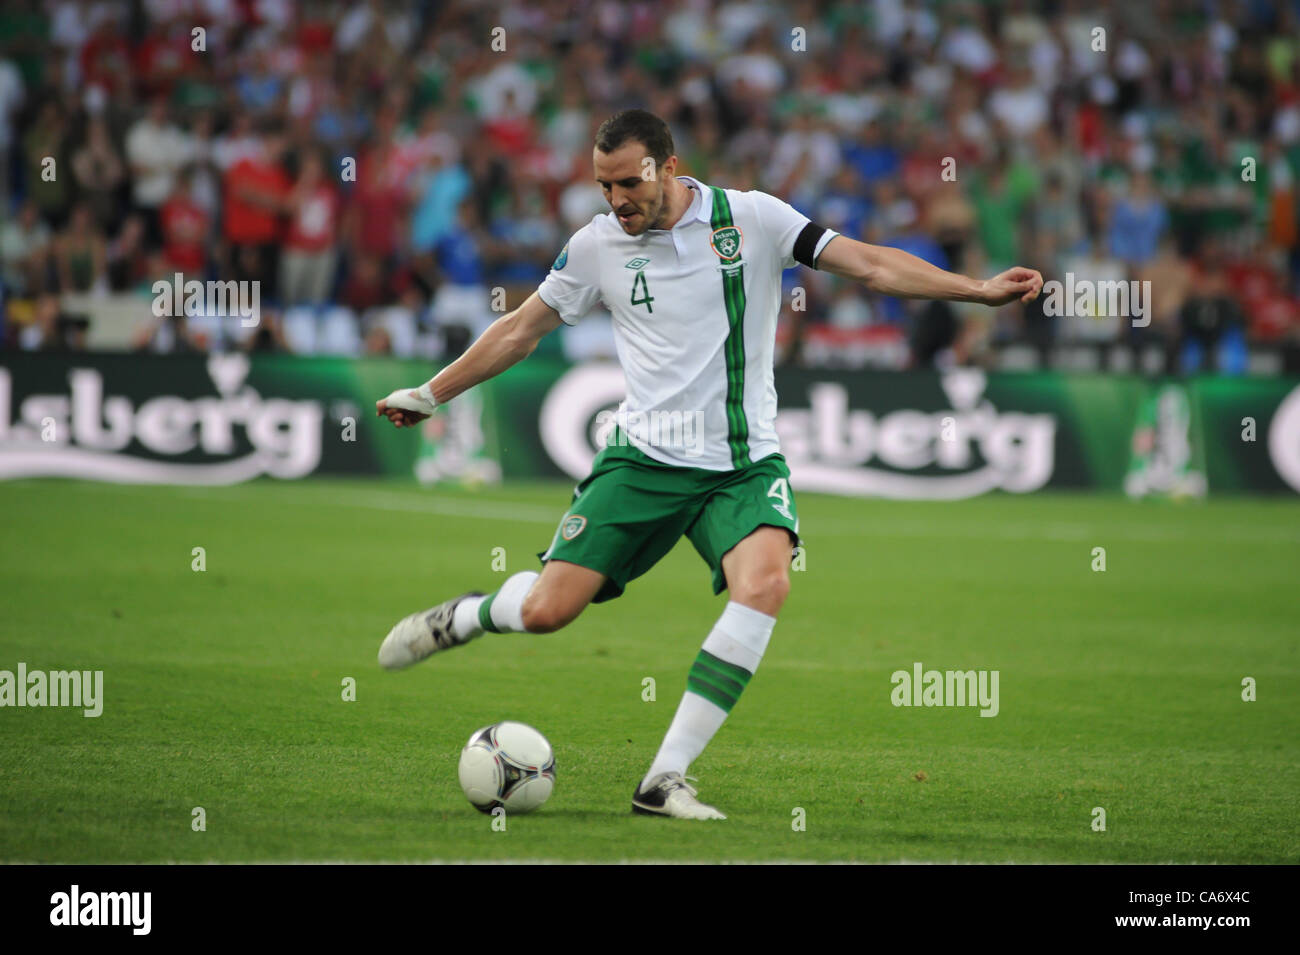 18.06.2012 , Poznan, Poland. John O'Shea (Sunderland AFC) in action for Rep of Ireland during the European Championship - Stock Image